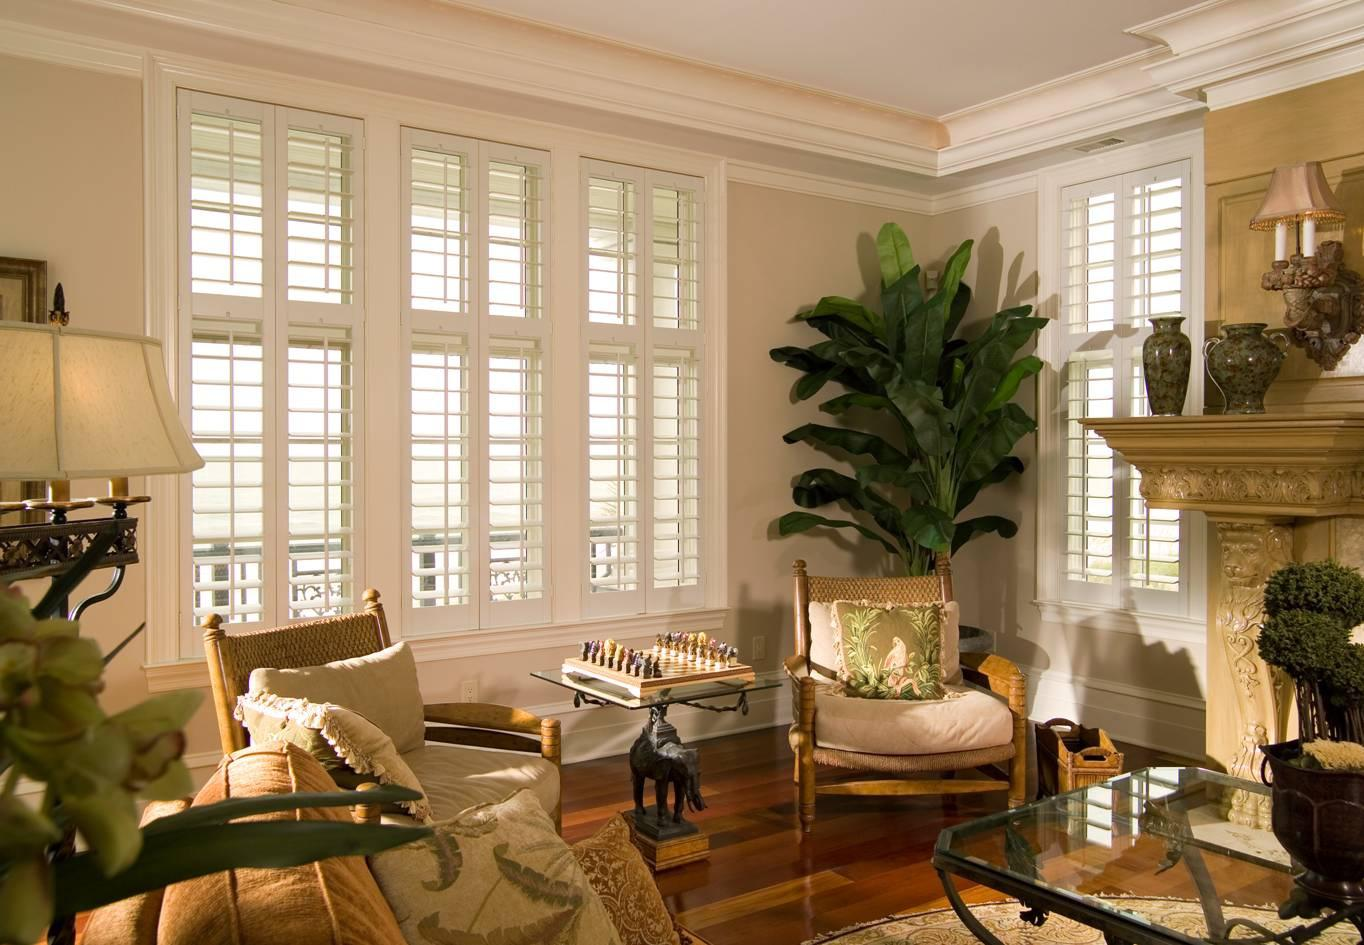 Plantation shutters for traditional-styled homes